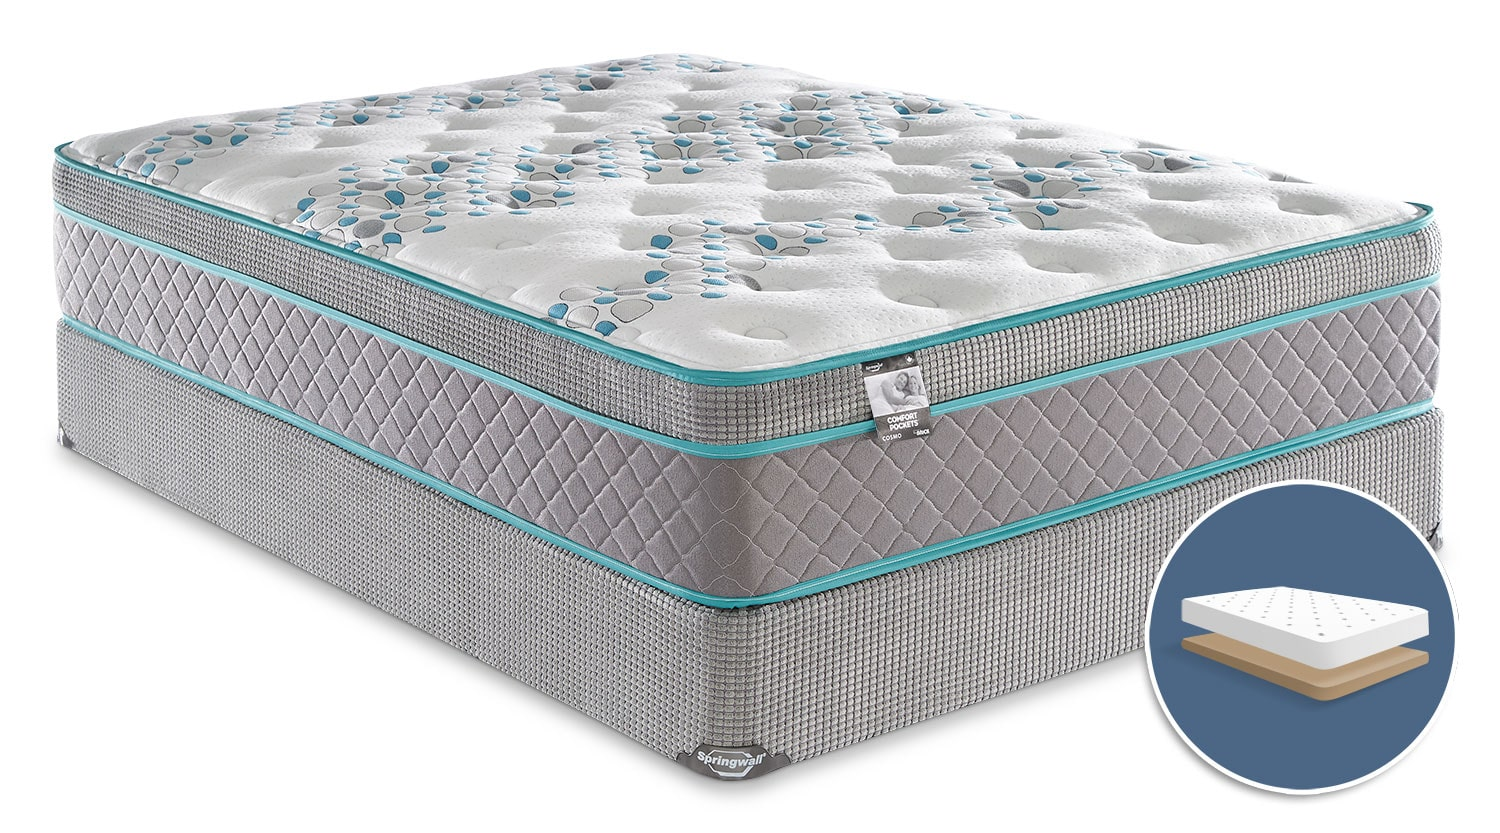 Mattresses and Bedding - Springwall Cosmo Euro-Top Full Low-Profile Mattress Set